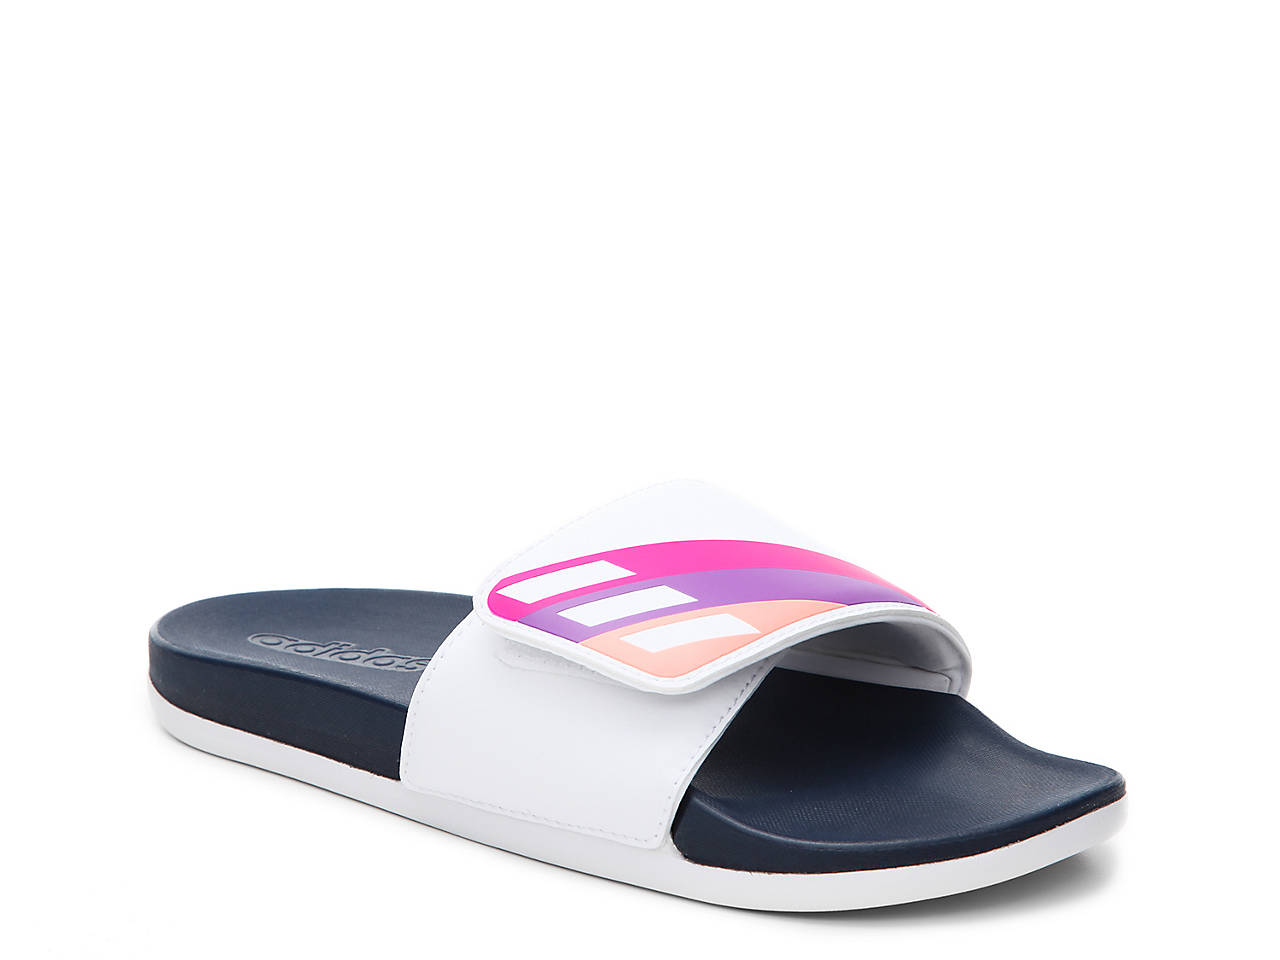 new arrivals 80f62 cf7e2 adidas. Adilette Cloudfoam Ultra Adjustable Slide Sandal